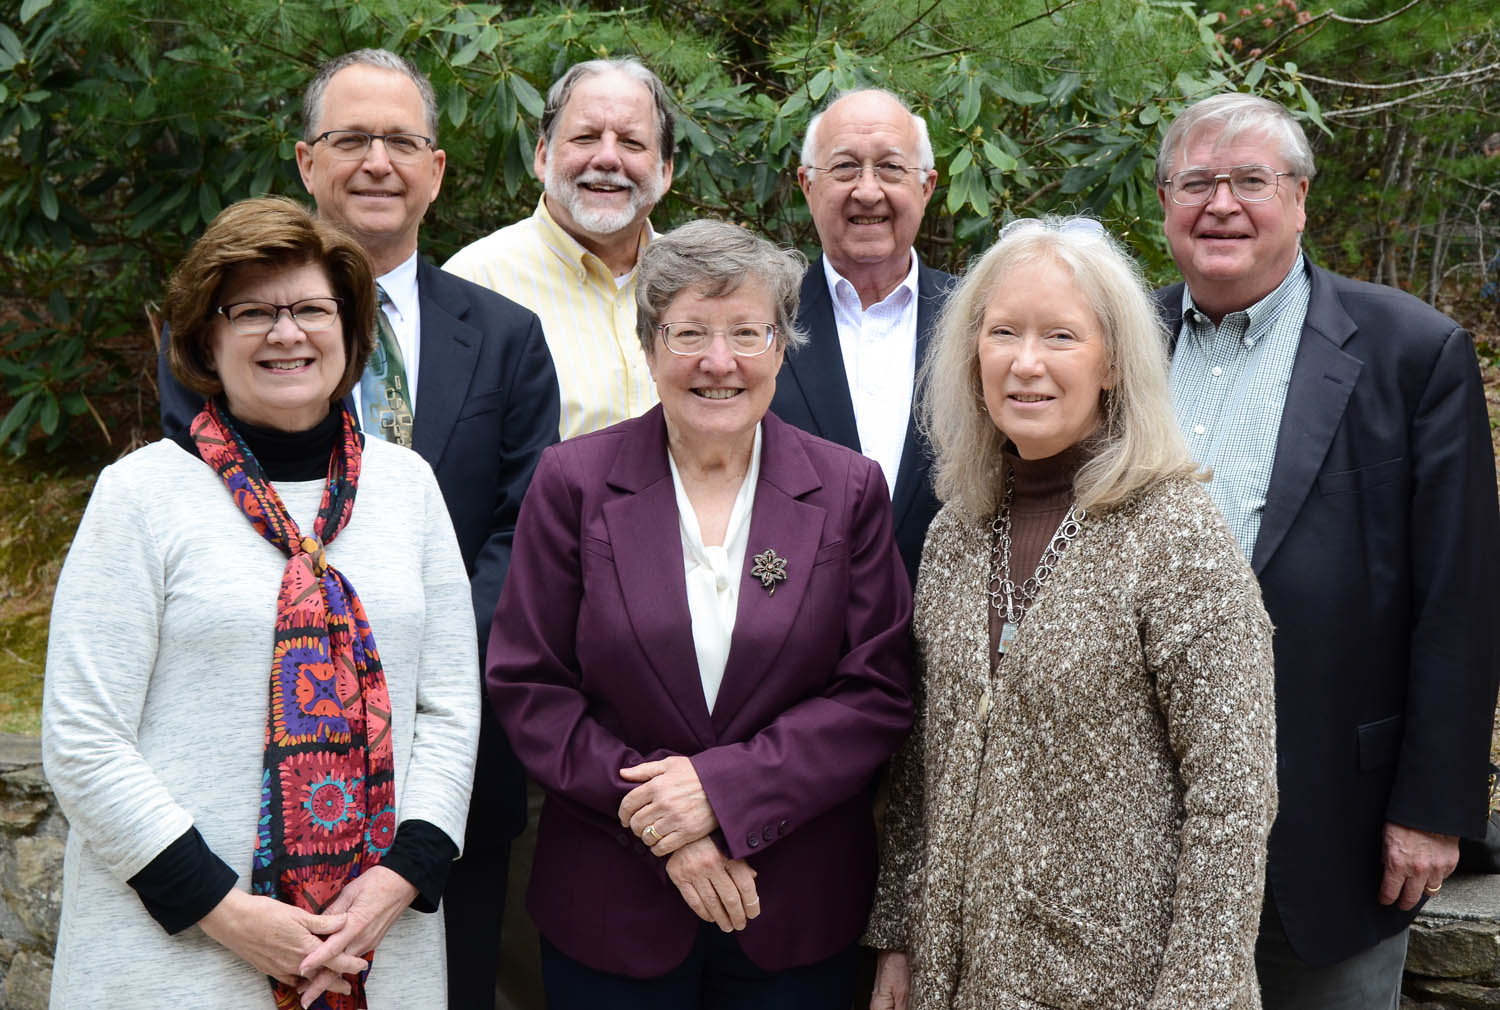 The Rev. Judy Knopf, the Rev. David Guthrie, the Rev. Jeff Coppage, the Rev. Nola Knouse, Tommy Cole, Peggy Carter and Keith Kapp.